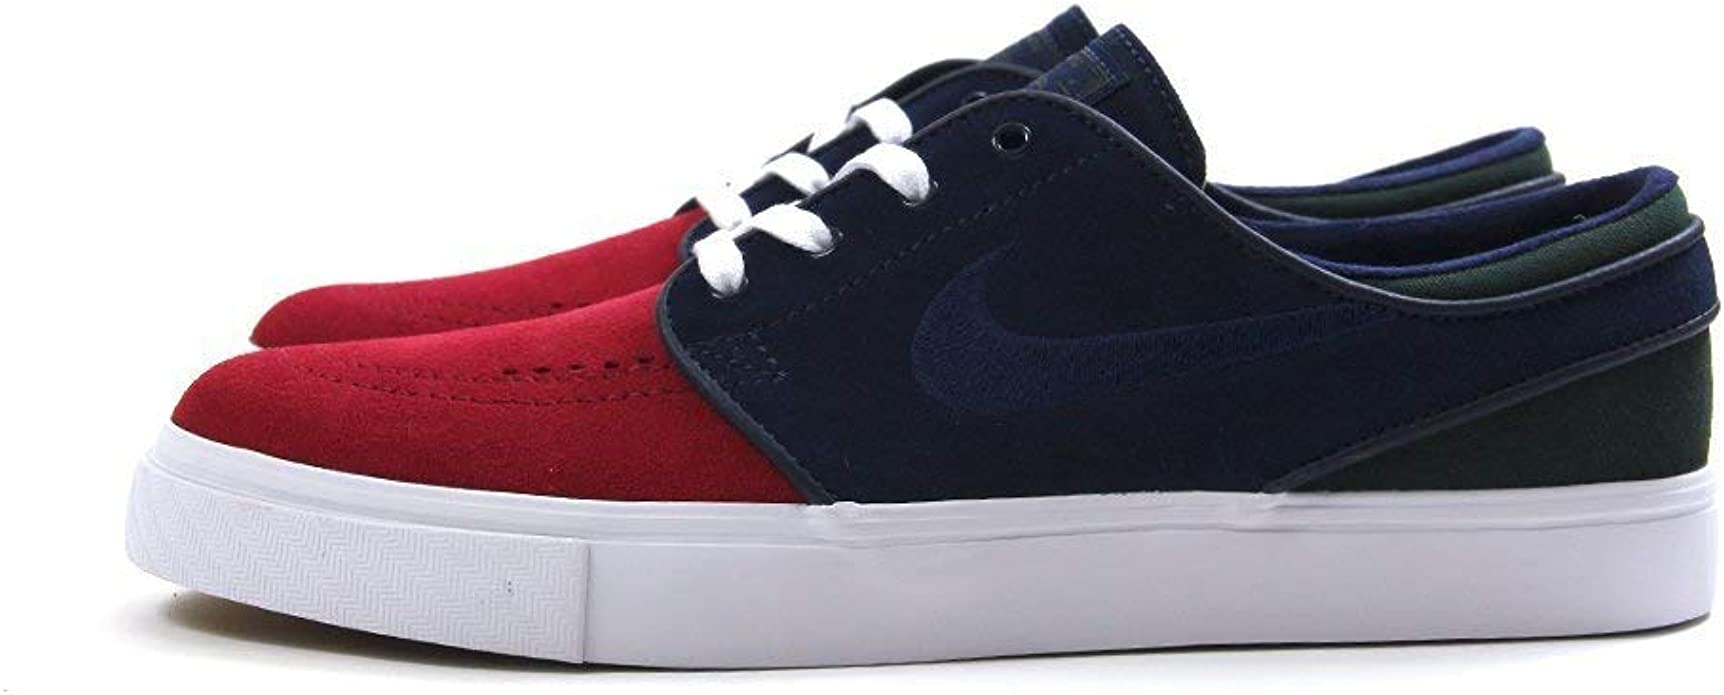 moral Puno Tom Audreath  Amazon.com | Nike Zoom Stefan Janoski Mens Fashion-Sneakers 333824-641_9 -  RED Crush/Blue Void-White-Midnight Green | Fashion Sneakers